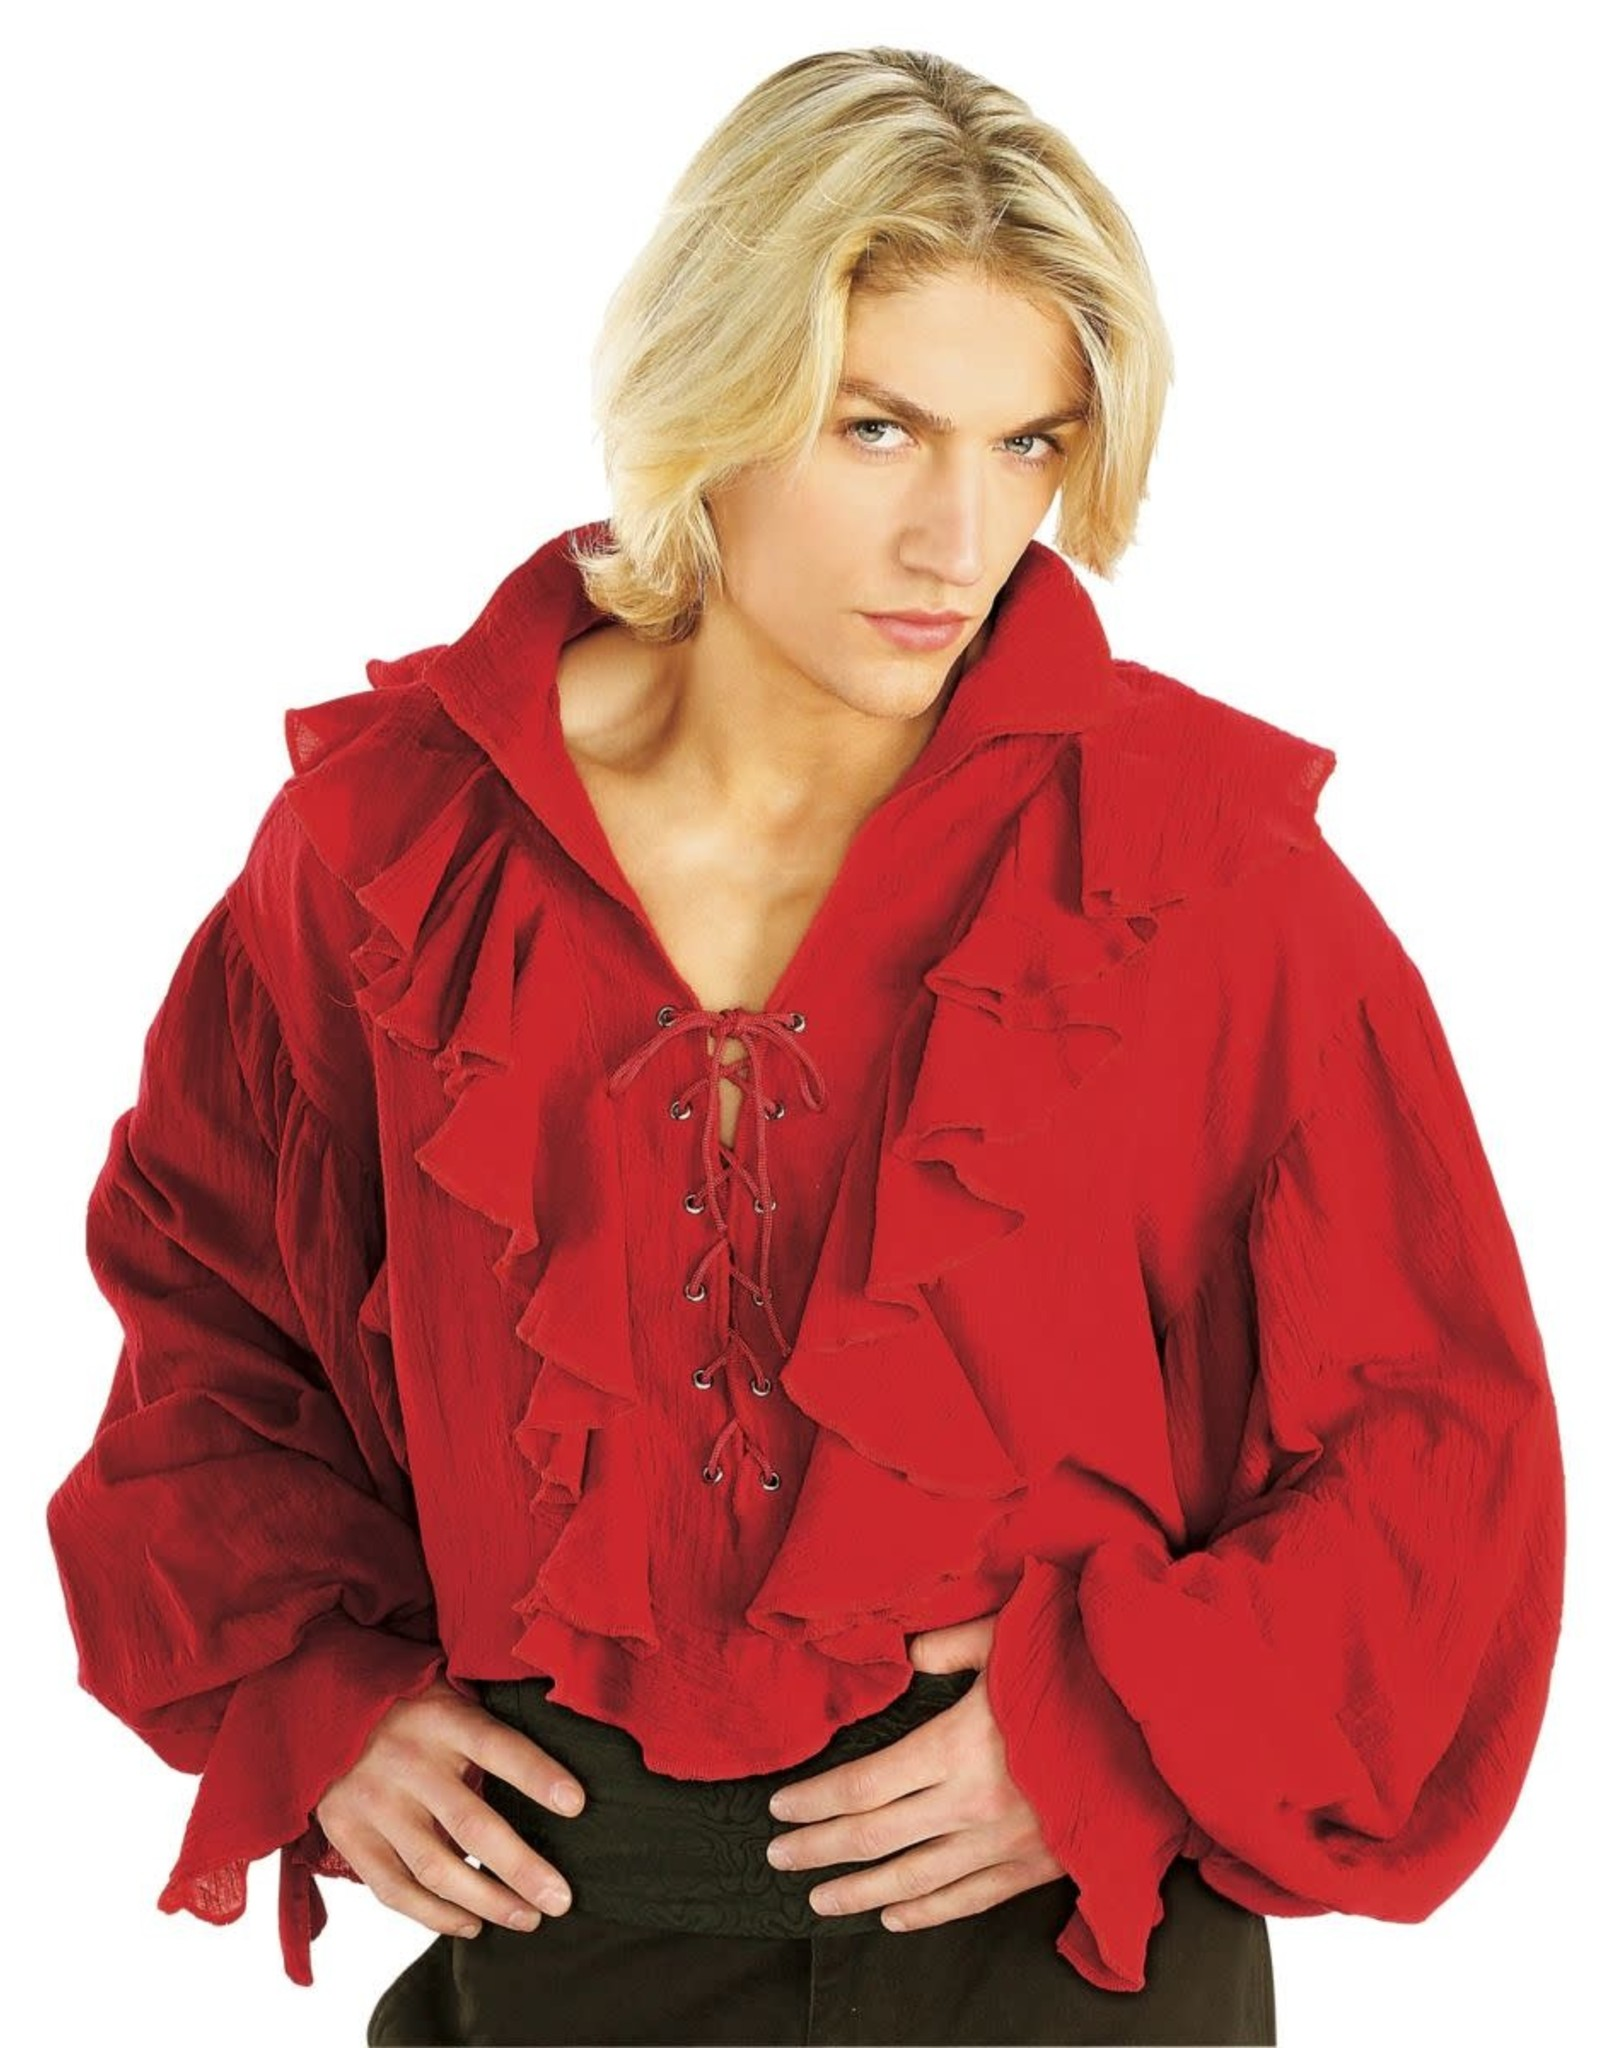 Rubies Costume Red Gauze Pirate Shirt